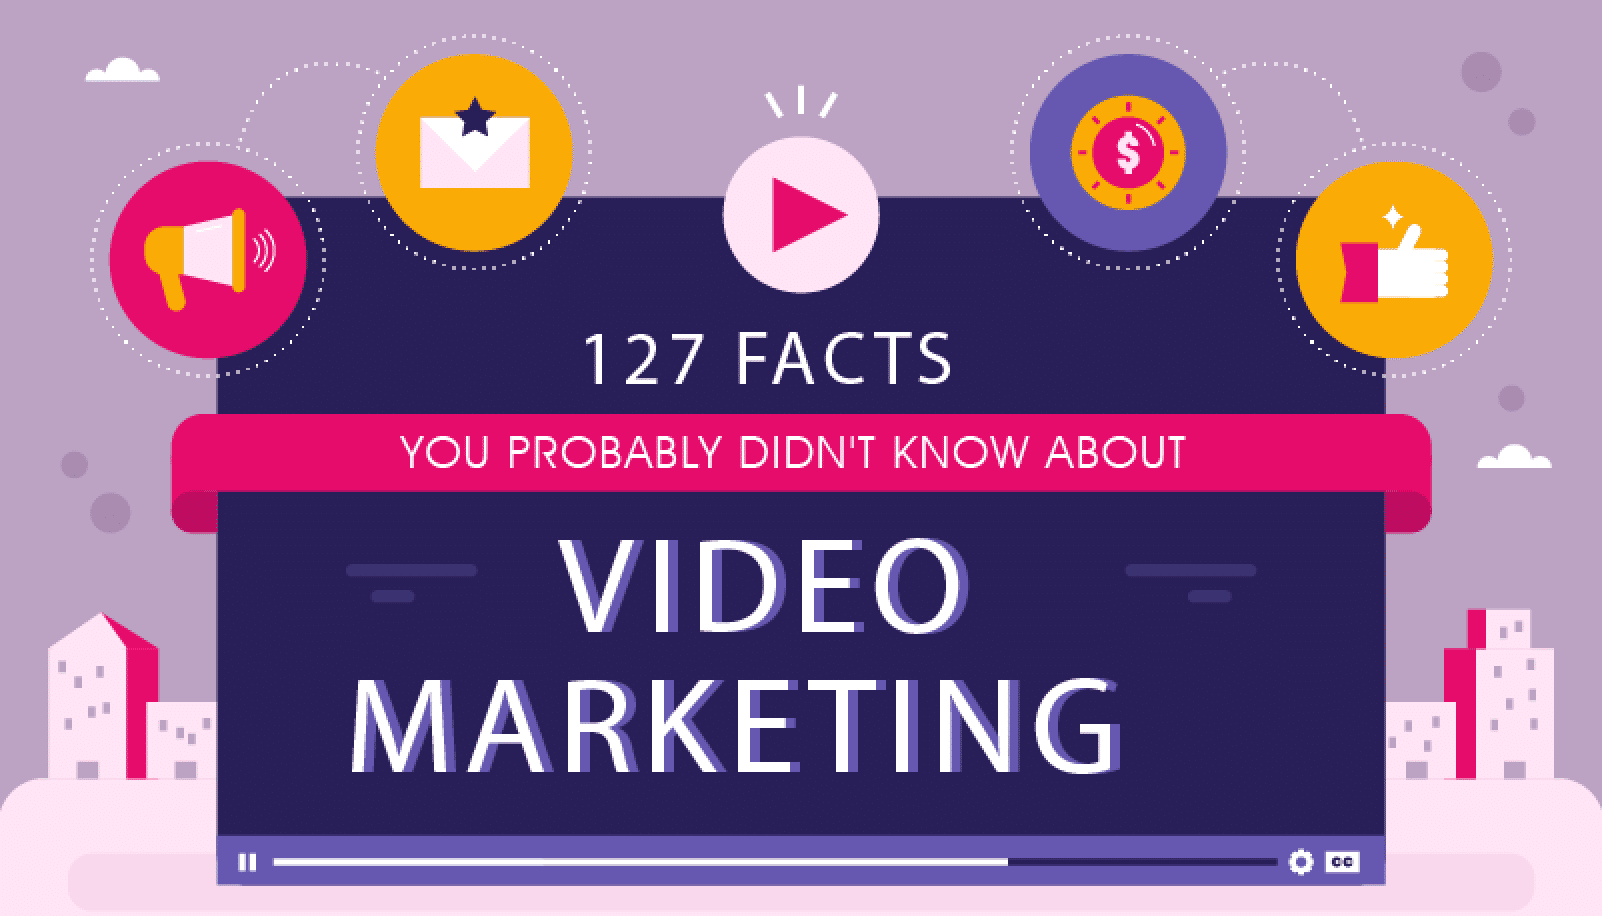 127 Facts You Probably Didn't Know About Video Marketing [Infographic]